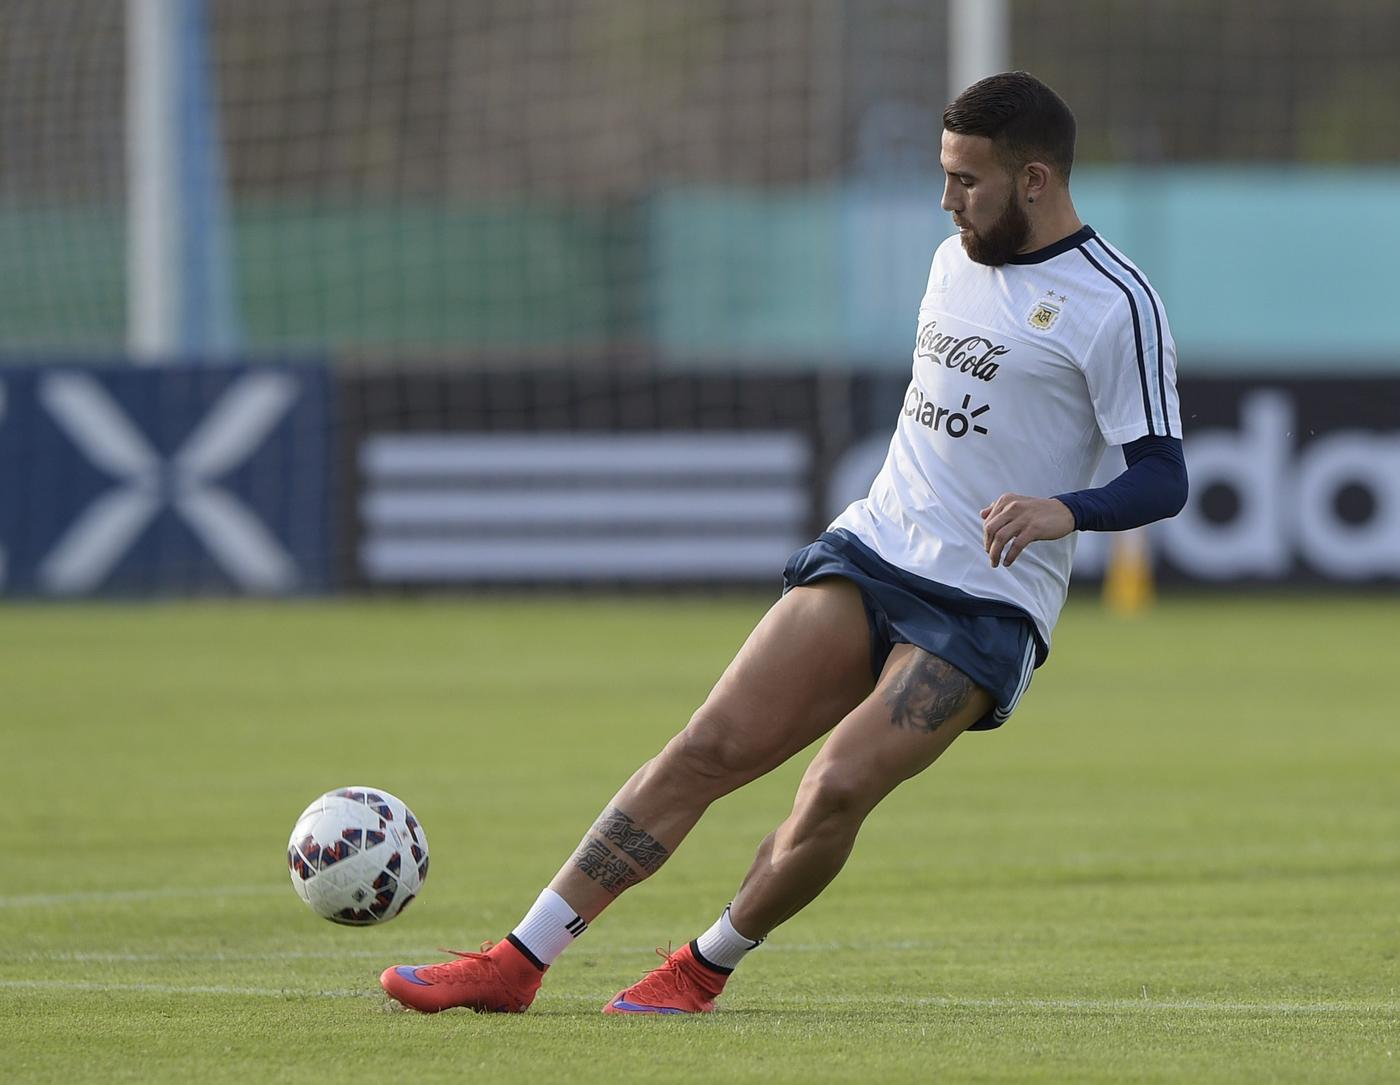 Manchester United 'reach verbal agreement with agent over Nicolas Otamendi transfer'